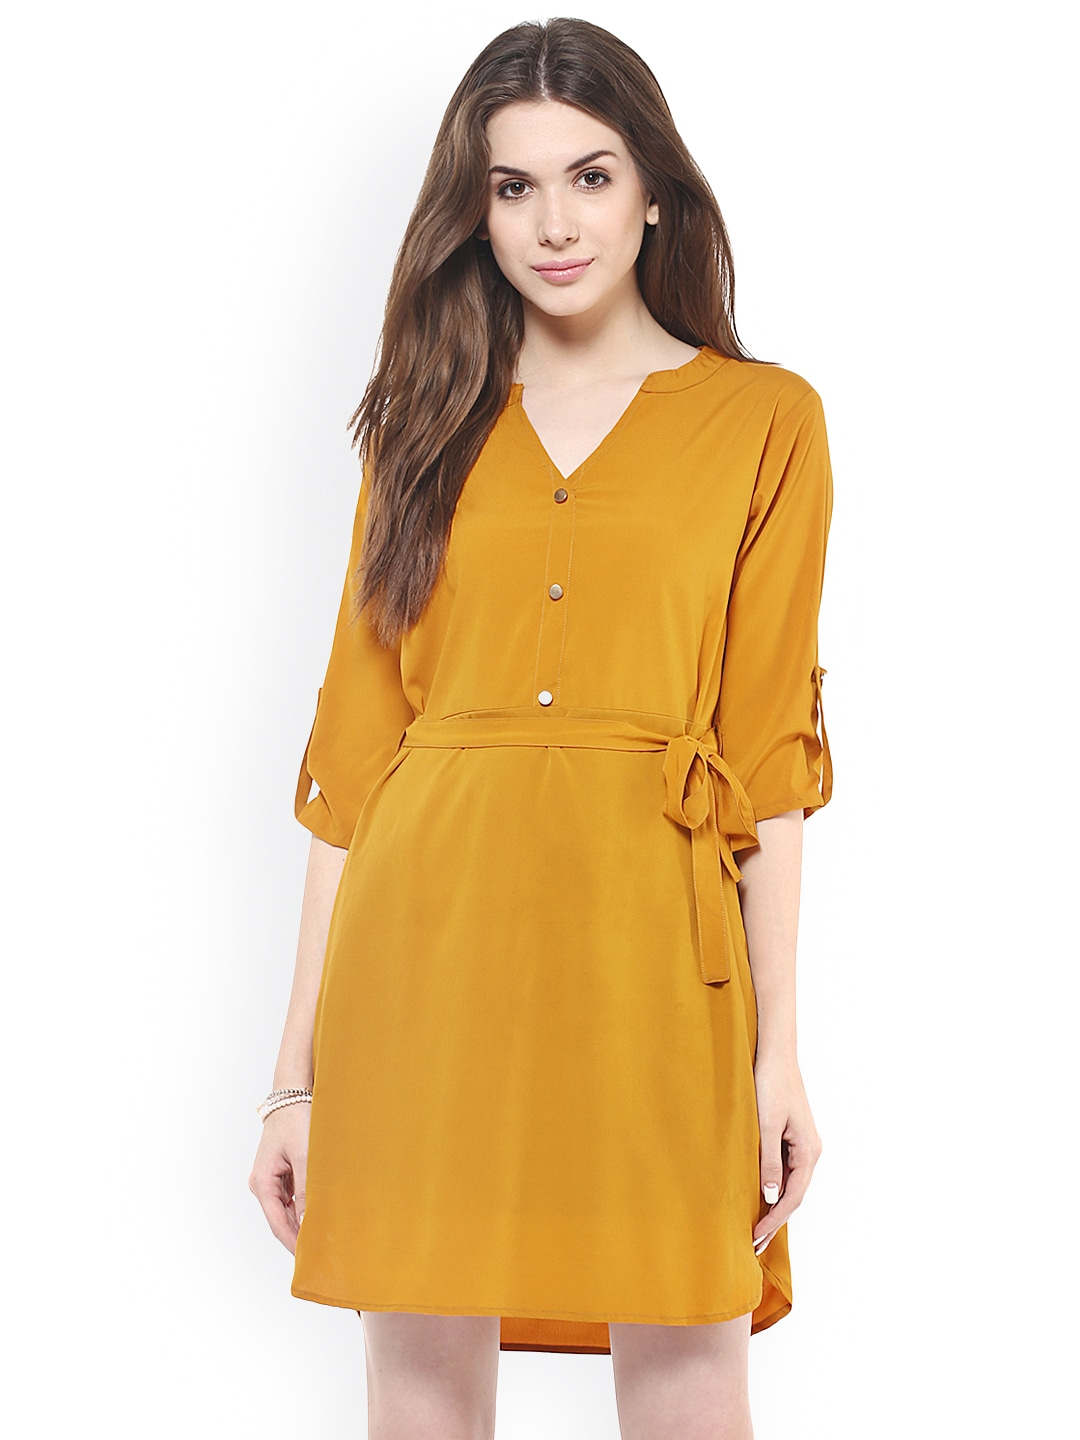 Women Clothing - Buy Women's Clothing Online - Myntra